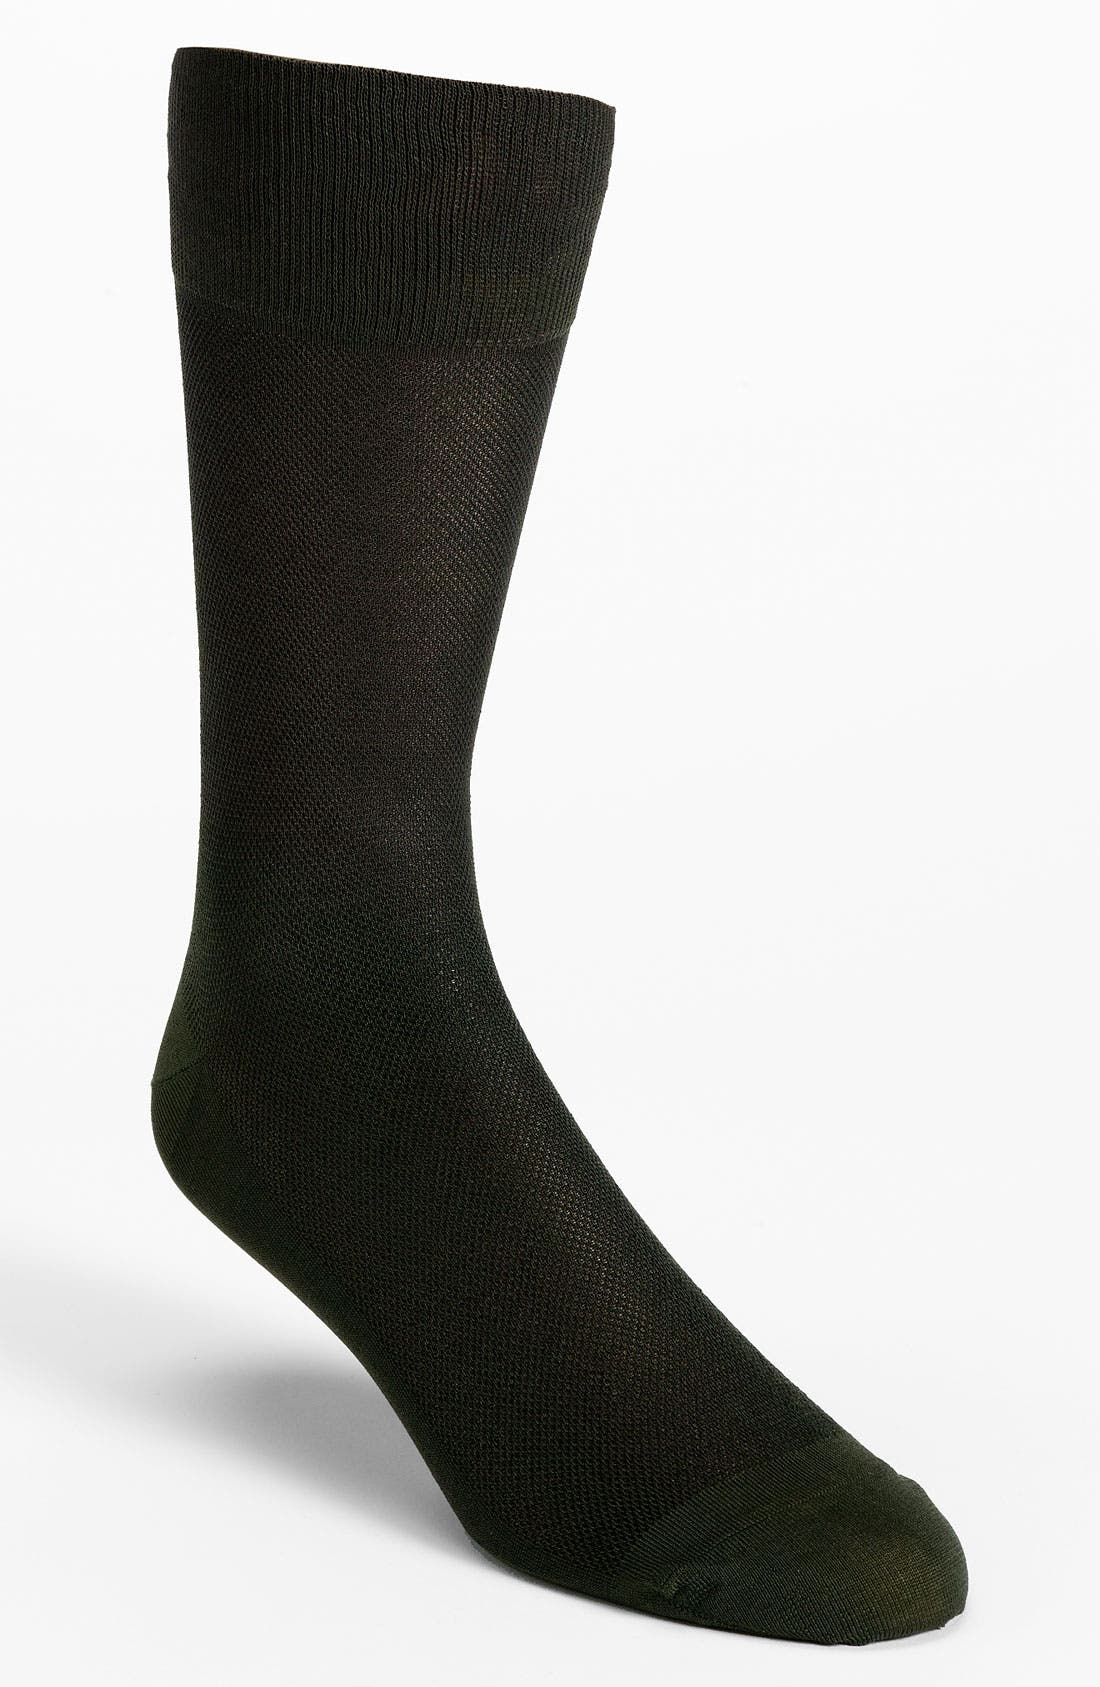 Alternate Image 1 Selected - John W. Nordstrom® Socks